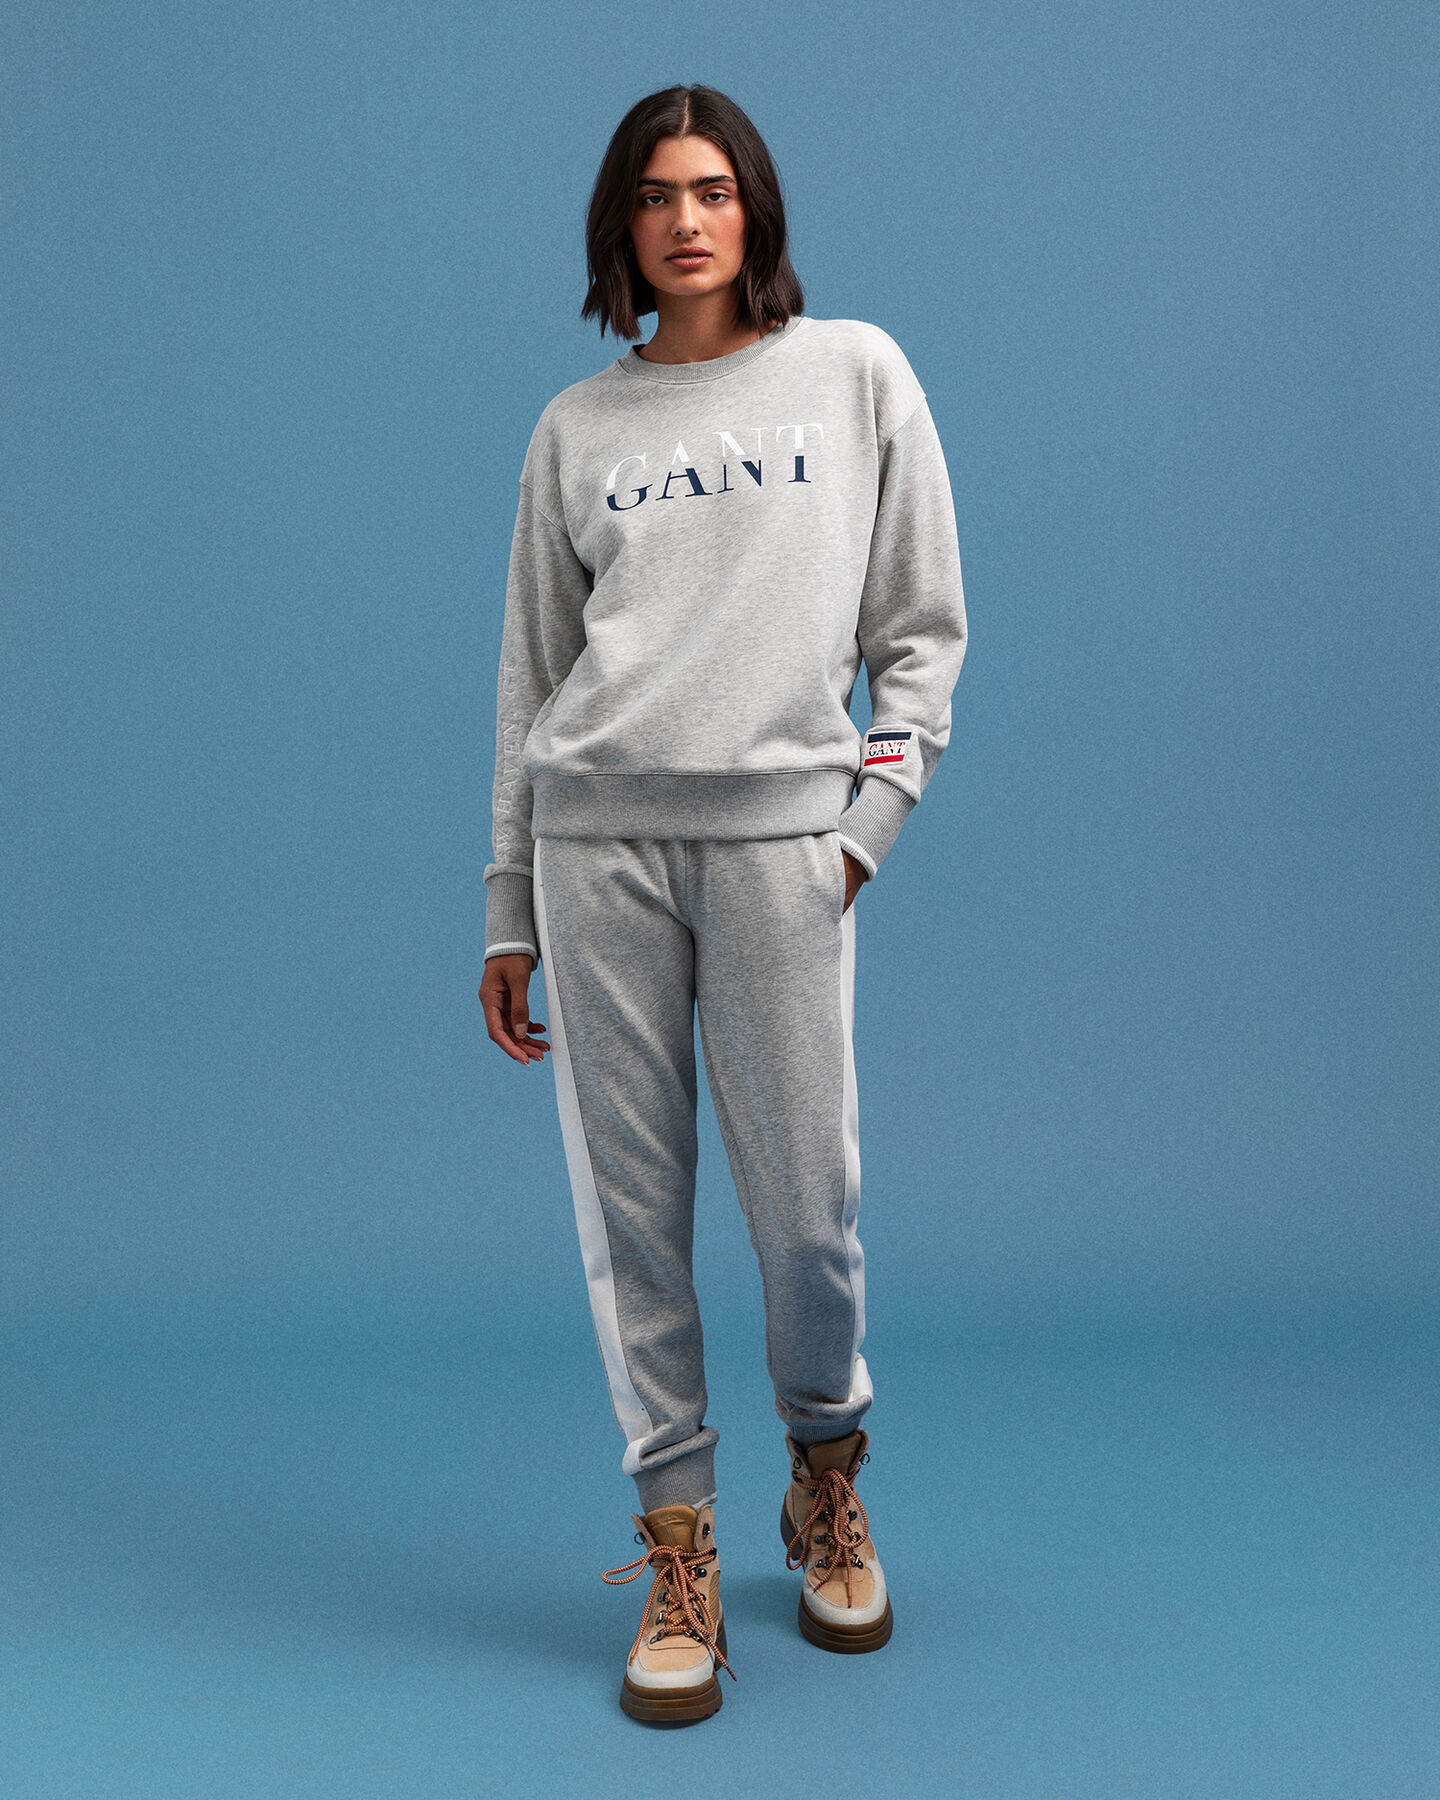 Graphic Rundhals-Sweatshirt